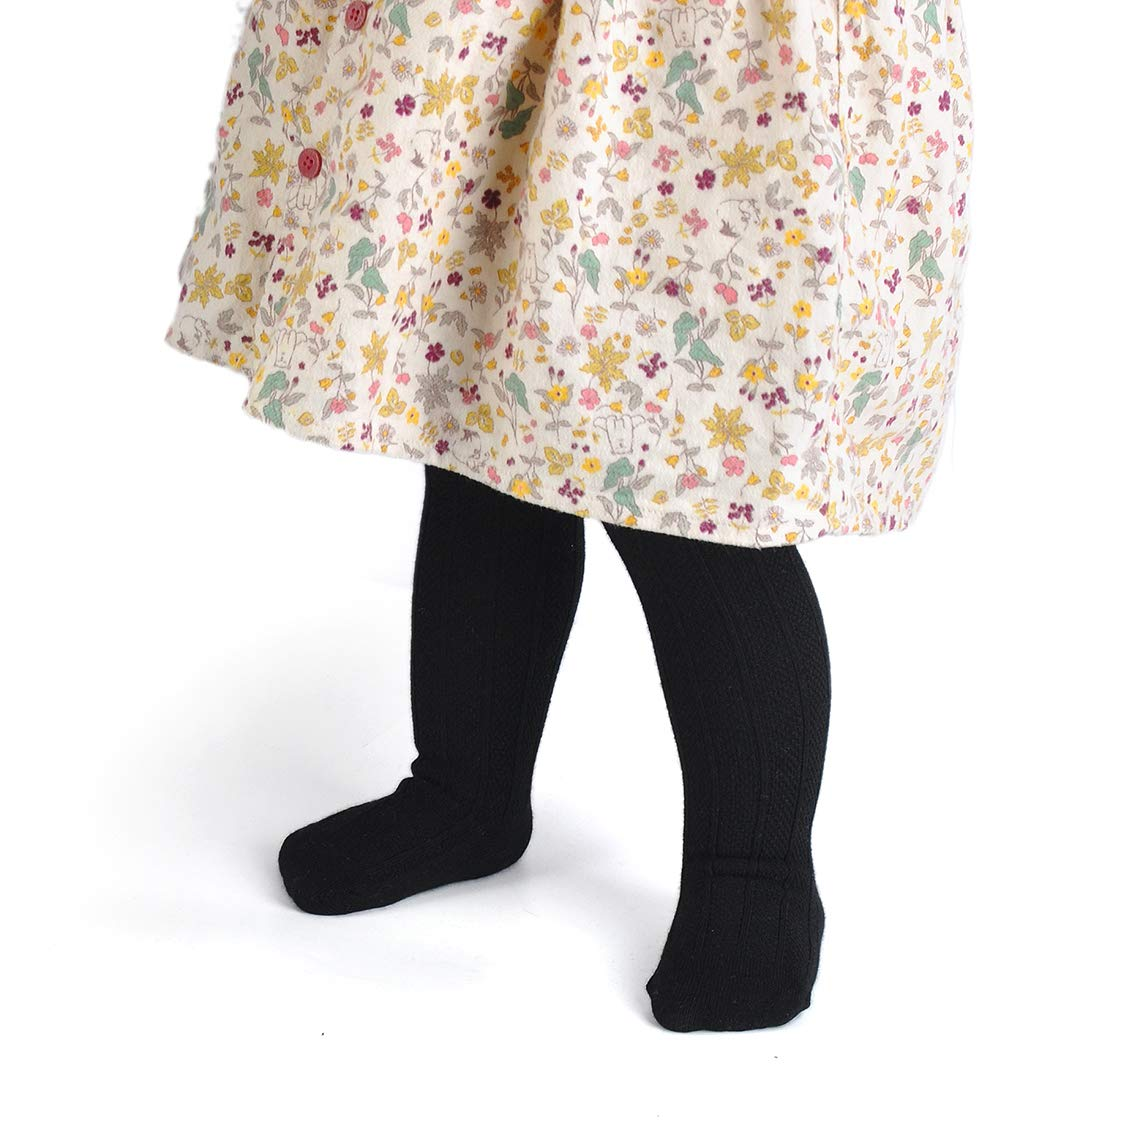 Epeius Baby Girls Boys Uniform Knee High Socks Tube Ruffled Stockings Infants and Toddlers Pack of 3//5